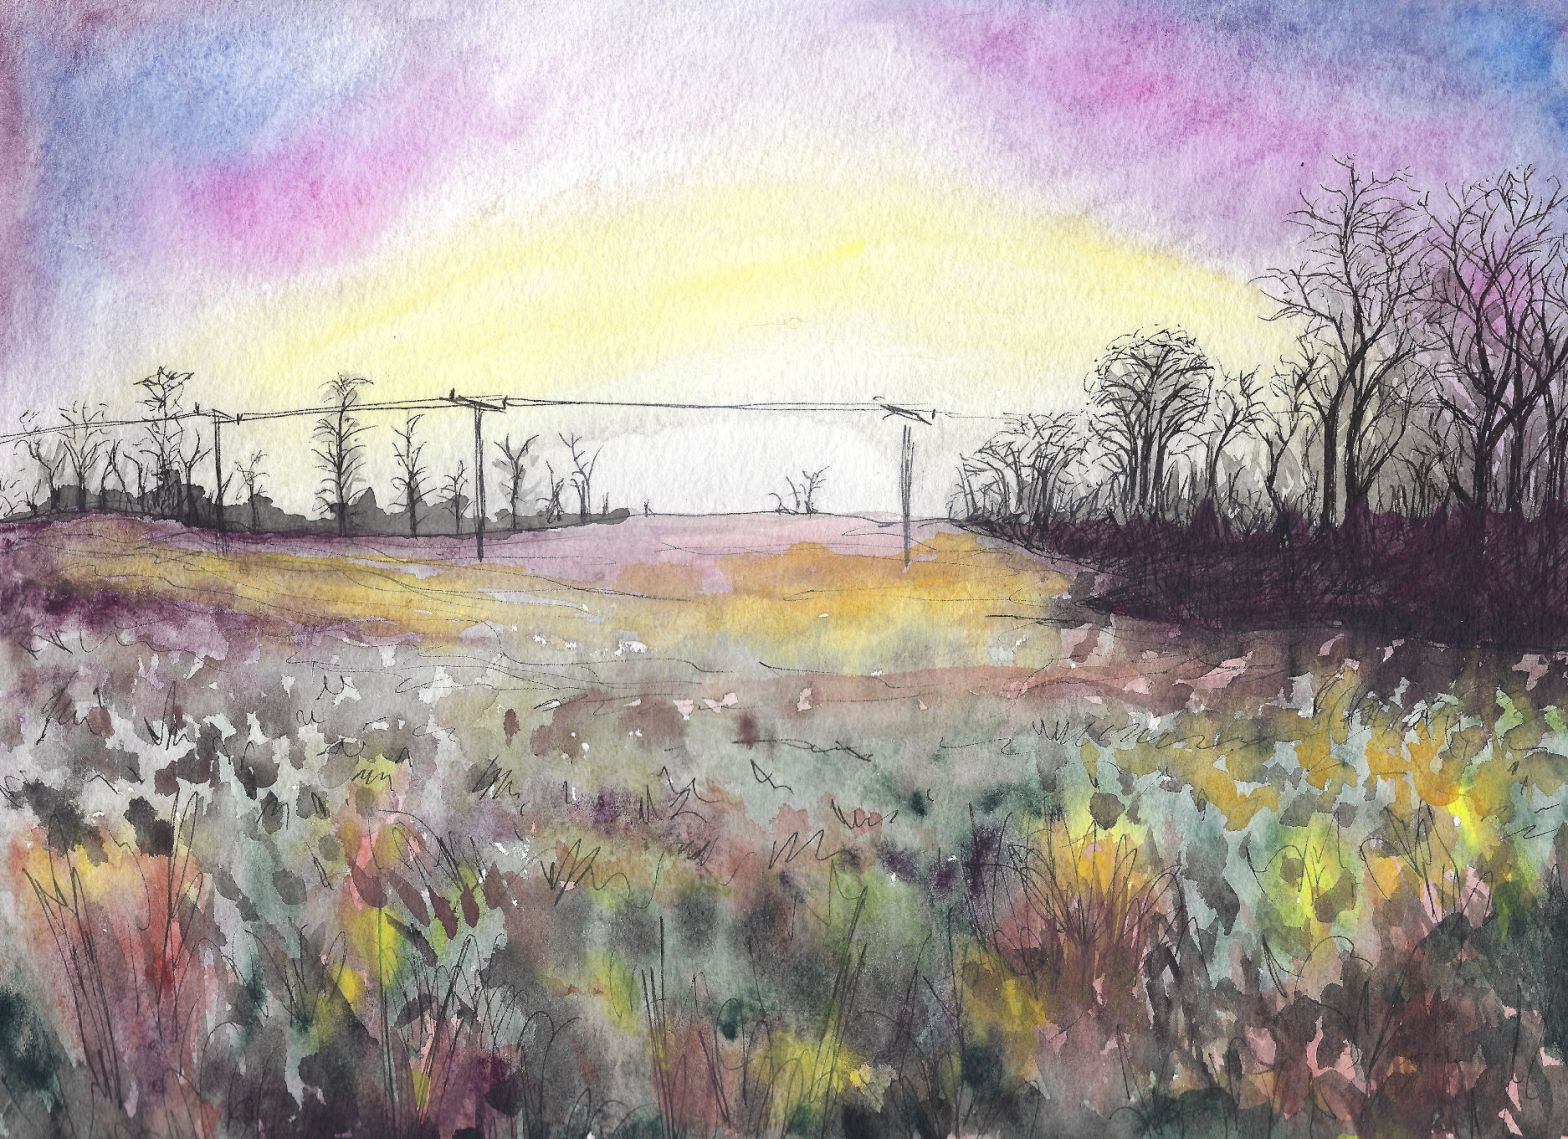 Watercolor painting of a winter field at sunset in Scotland.